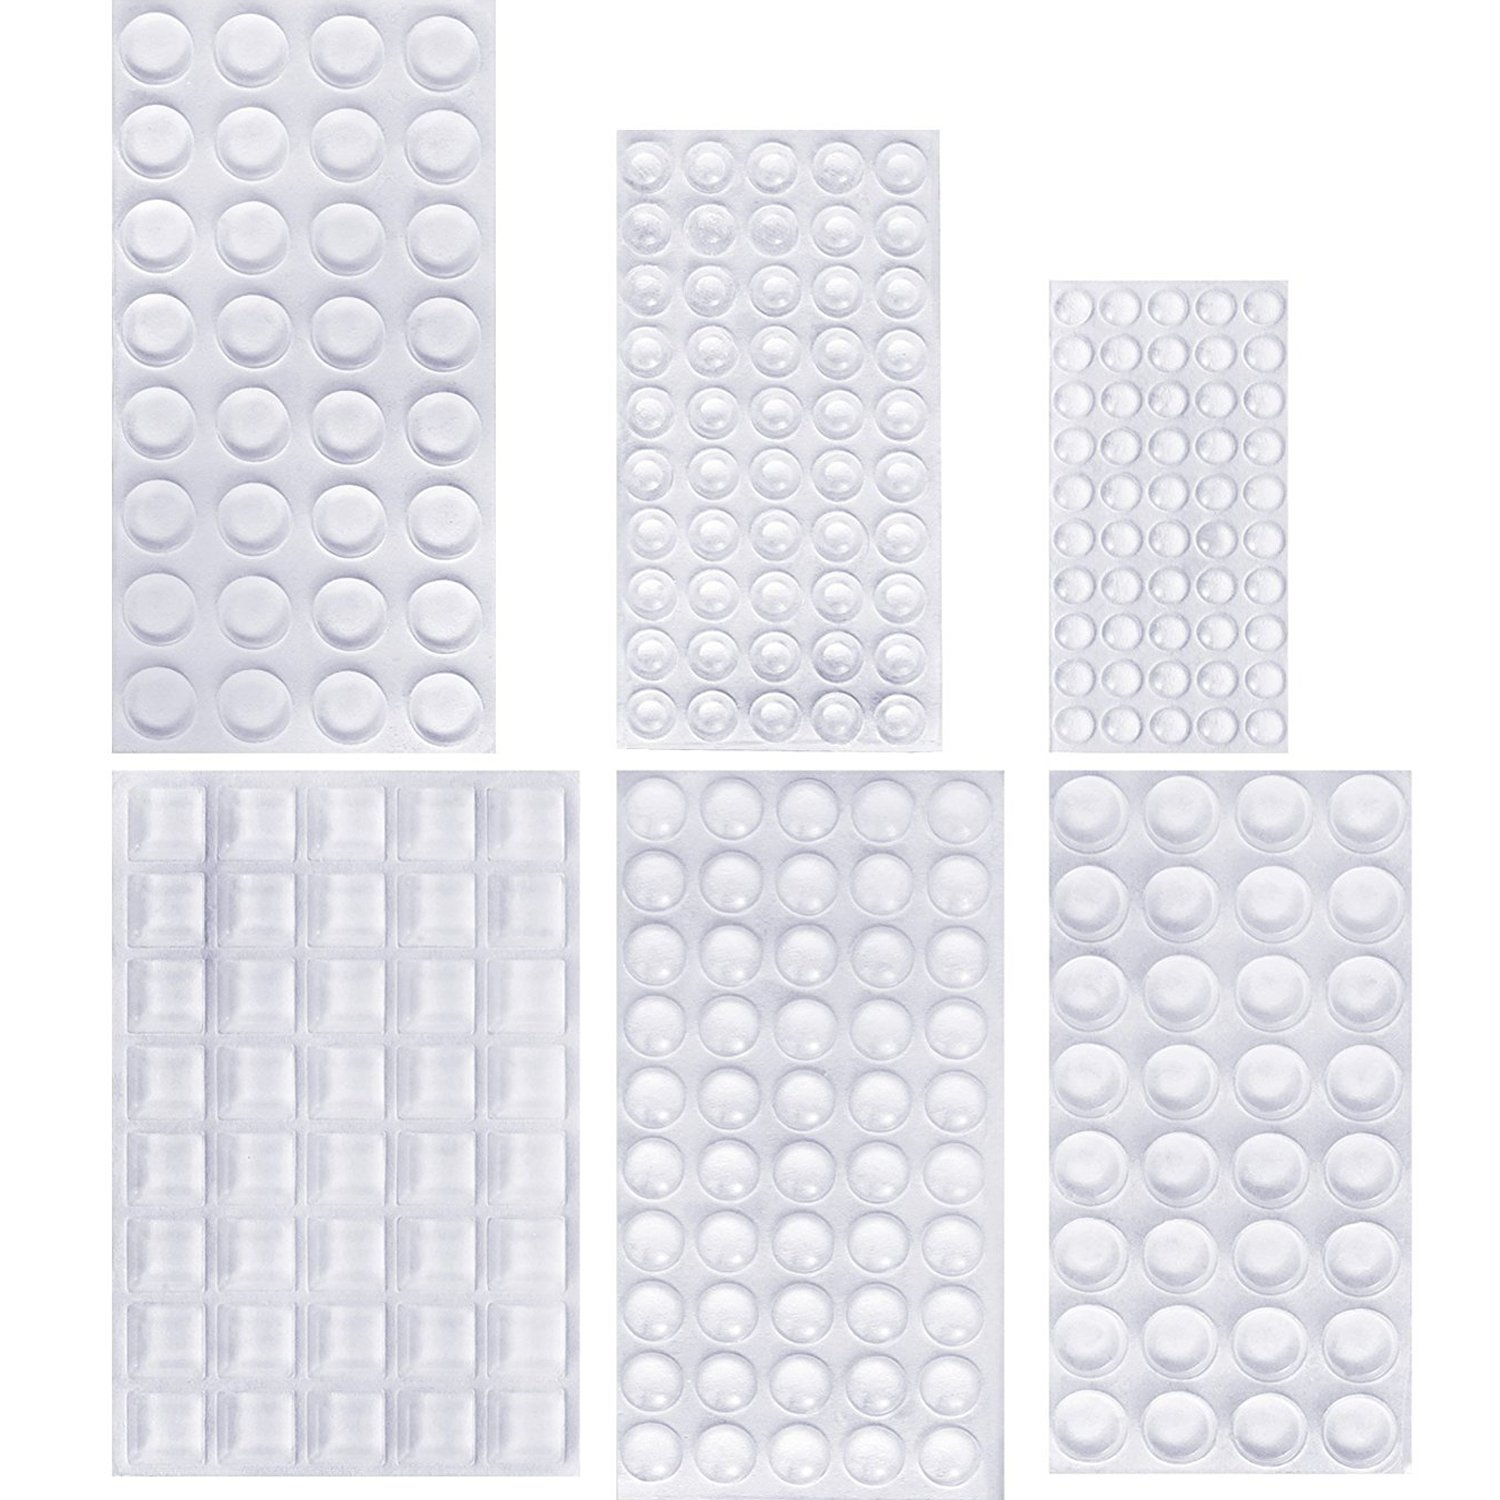 254 Pieces Clear Rubber Feet Bumper Pads Adhesive Transparent Buffer Pads Cabinet Door Bumpers Self Stick Noise Dampening Pads, 6 Sizes Outus